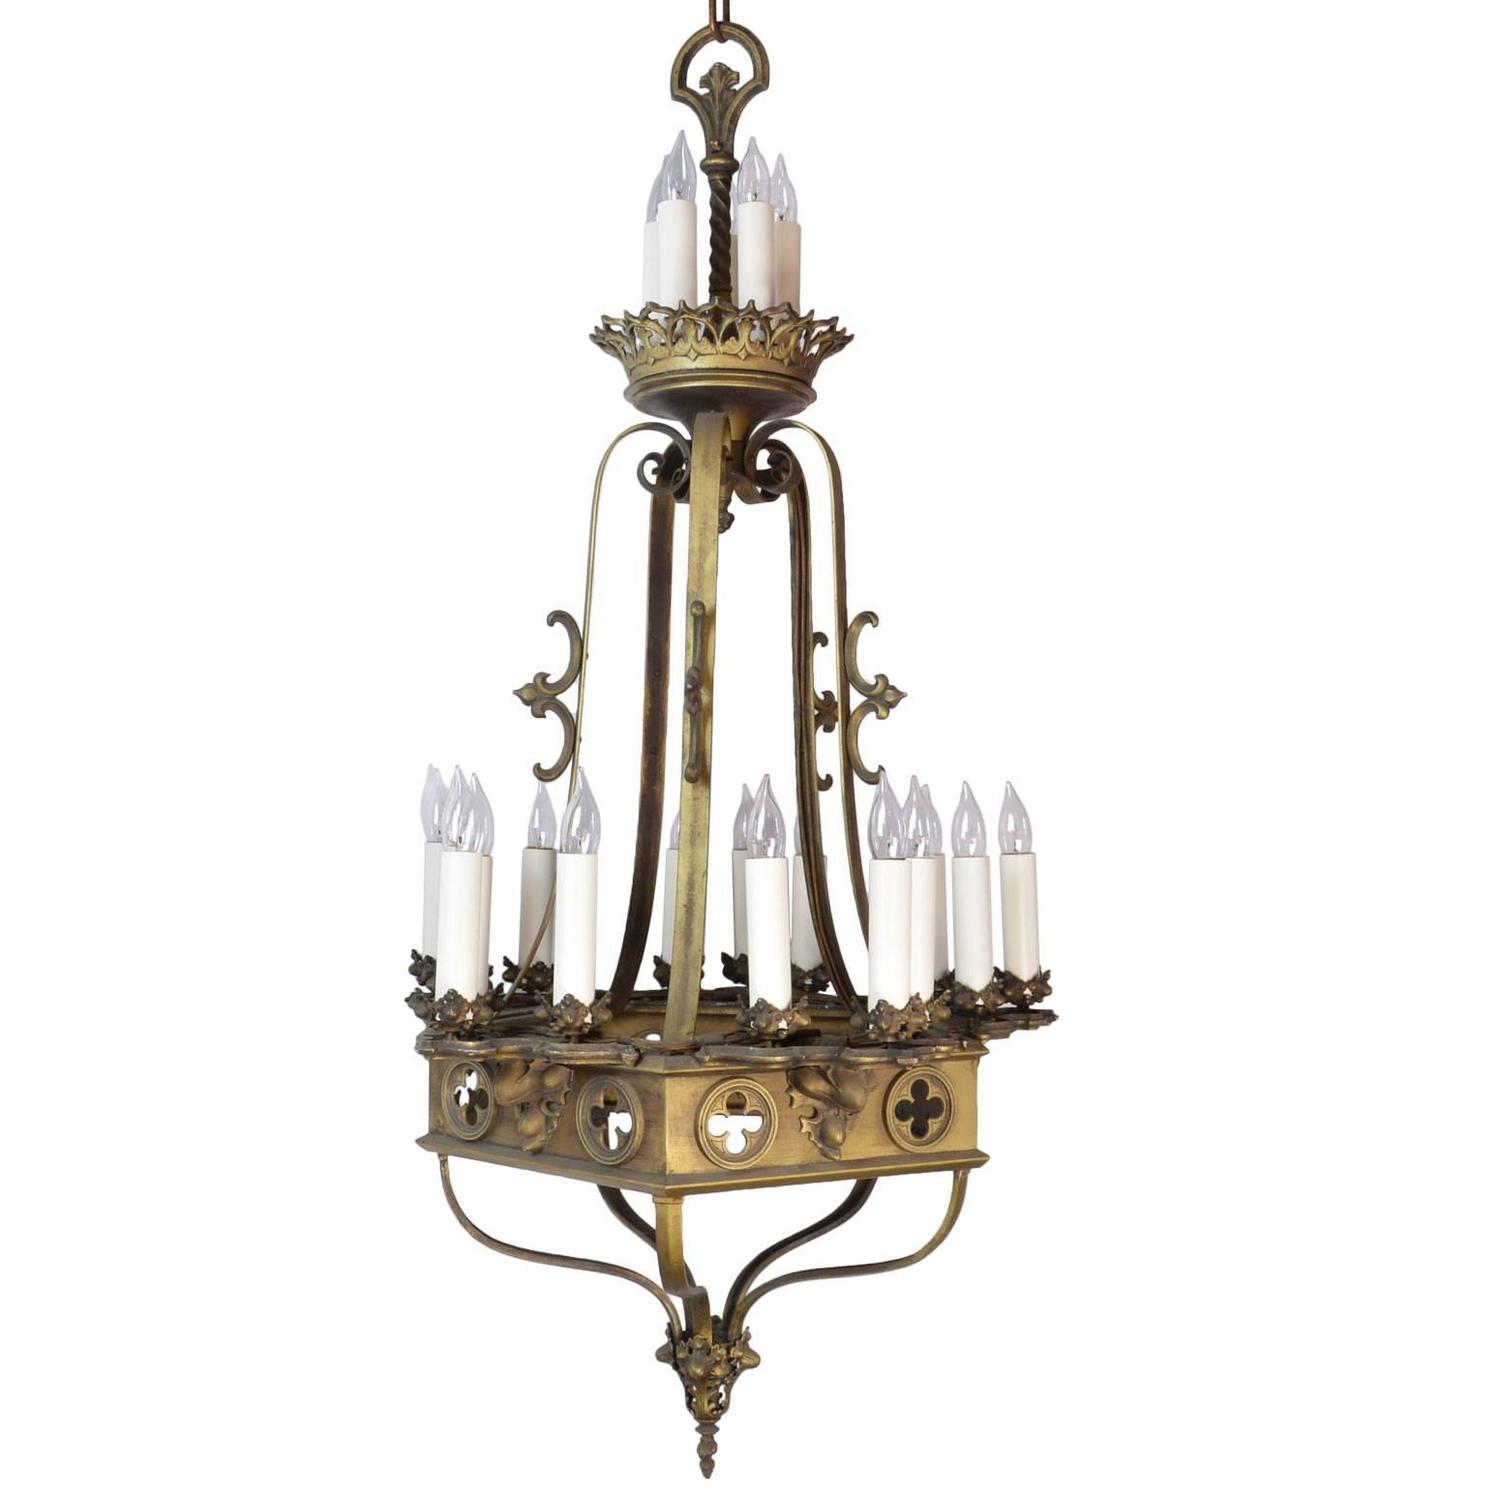 1930s Gothic Twenty Candle Chandelier For Sale at 1stdibs